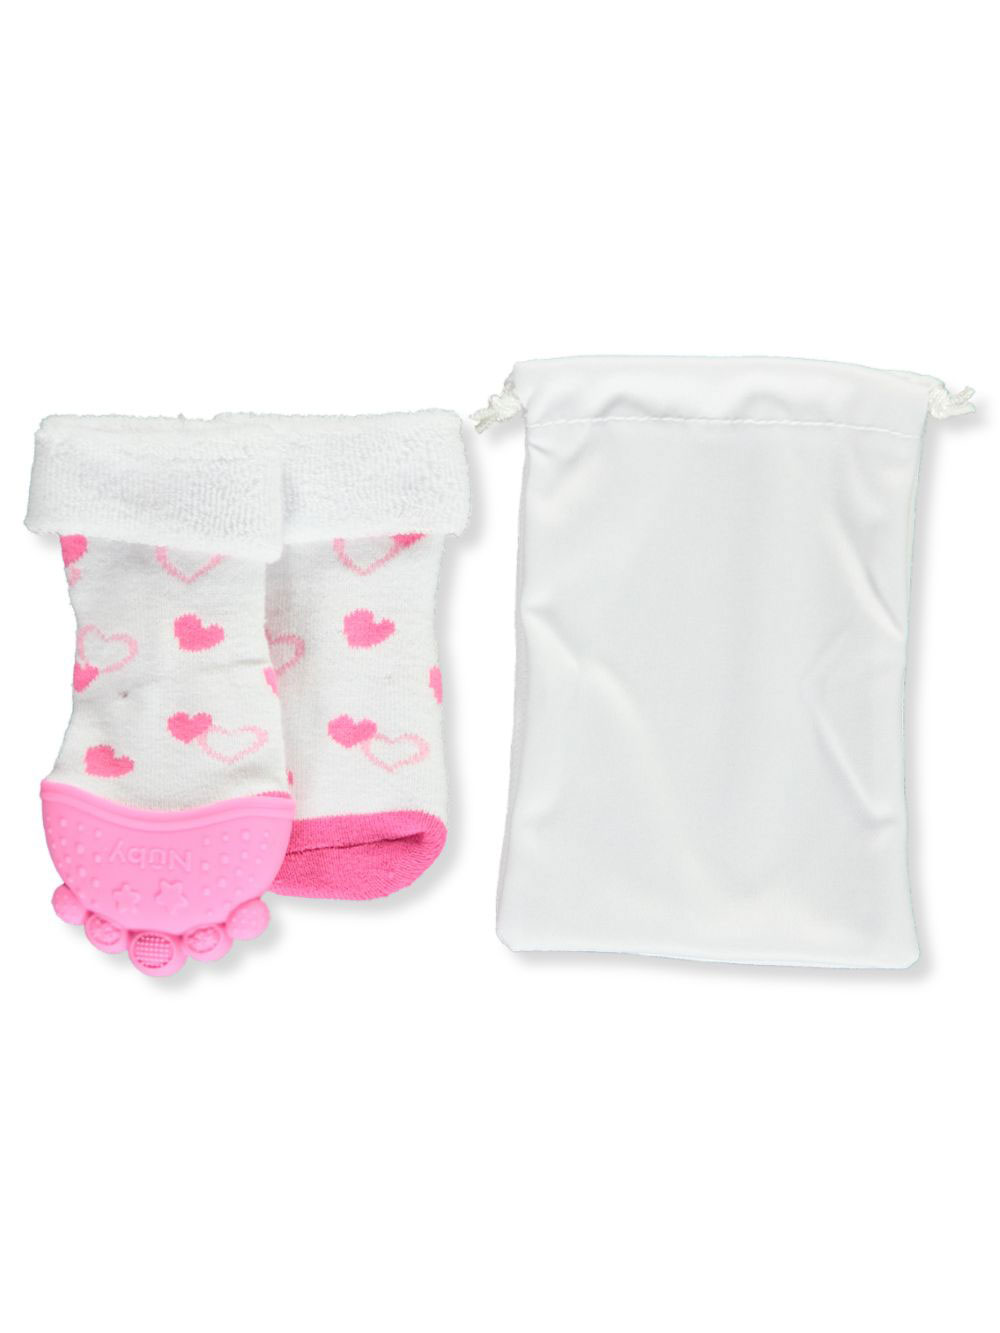 Light Pink and White 2-Pack Satin Ruffle Baby Socks 12-24 months